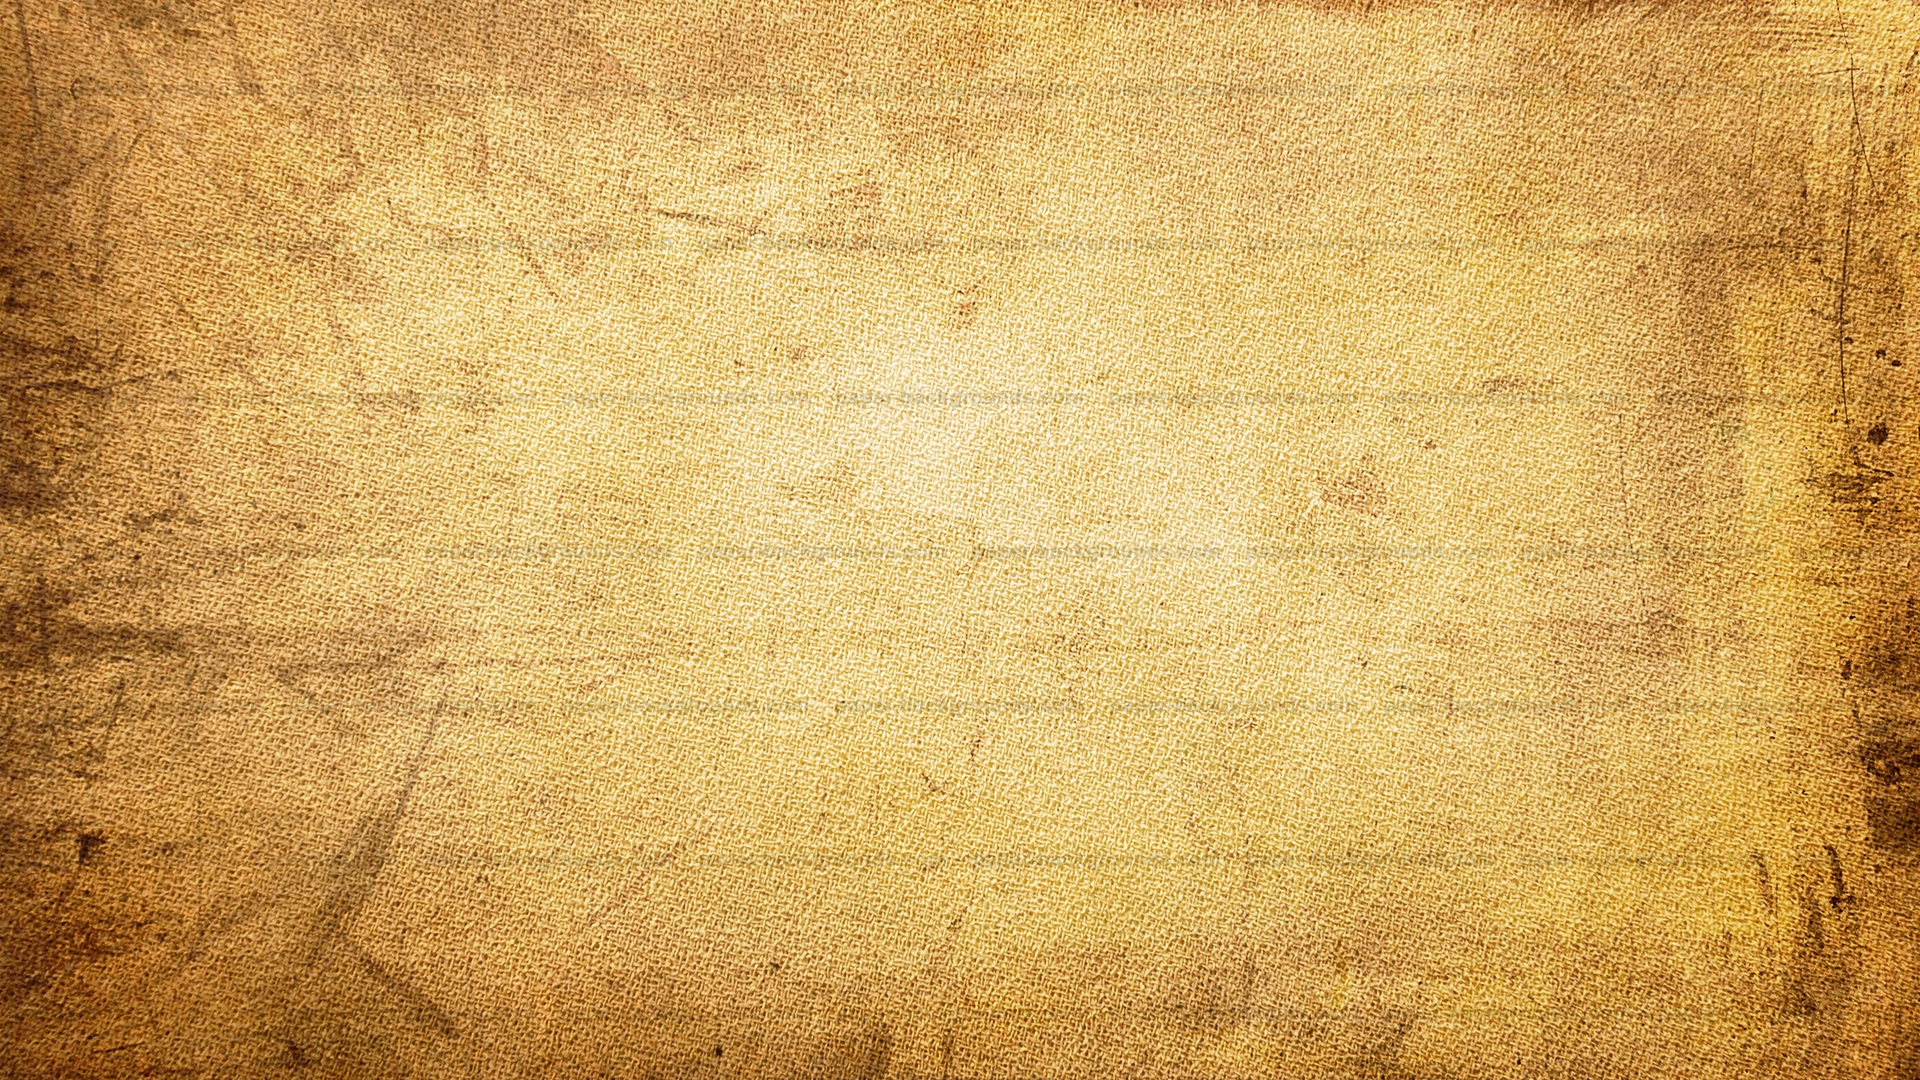 Paper Yellow Vintage Fabric Texture HD Slides PPT Backgrounds